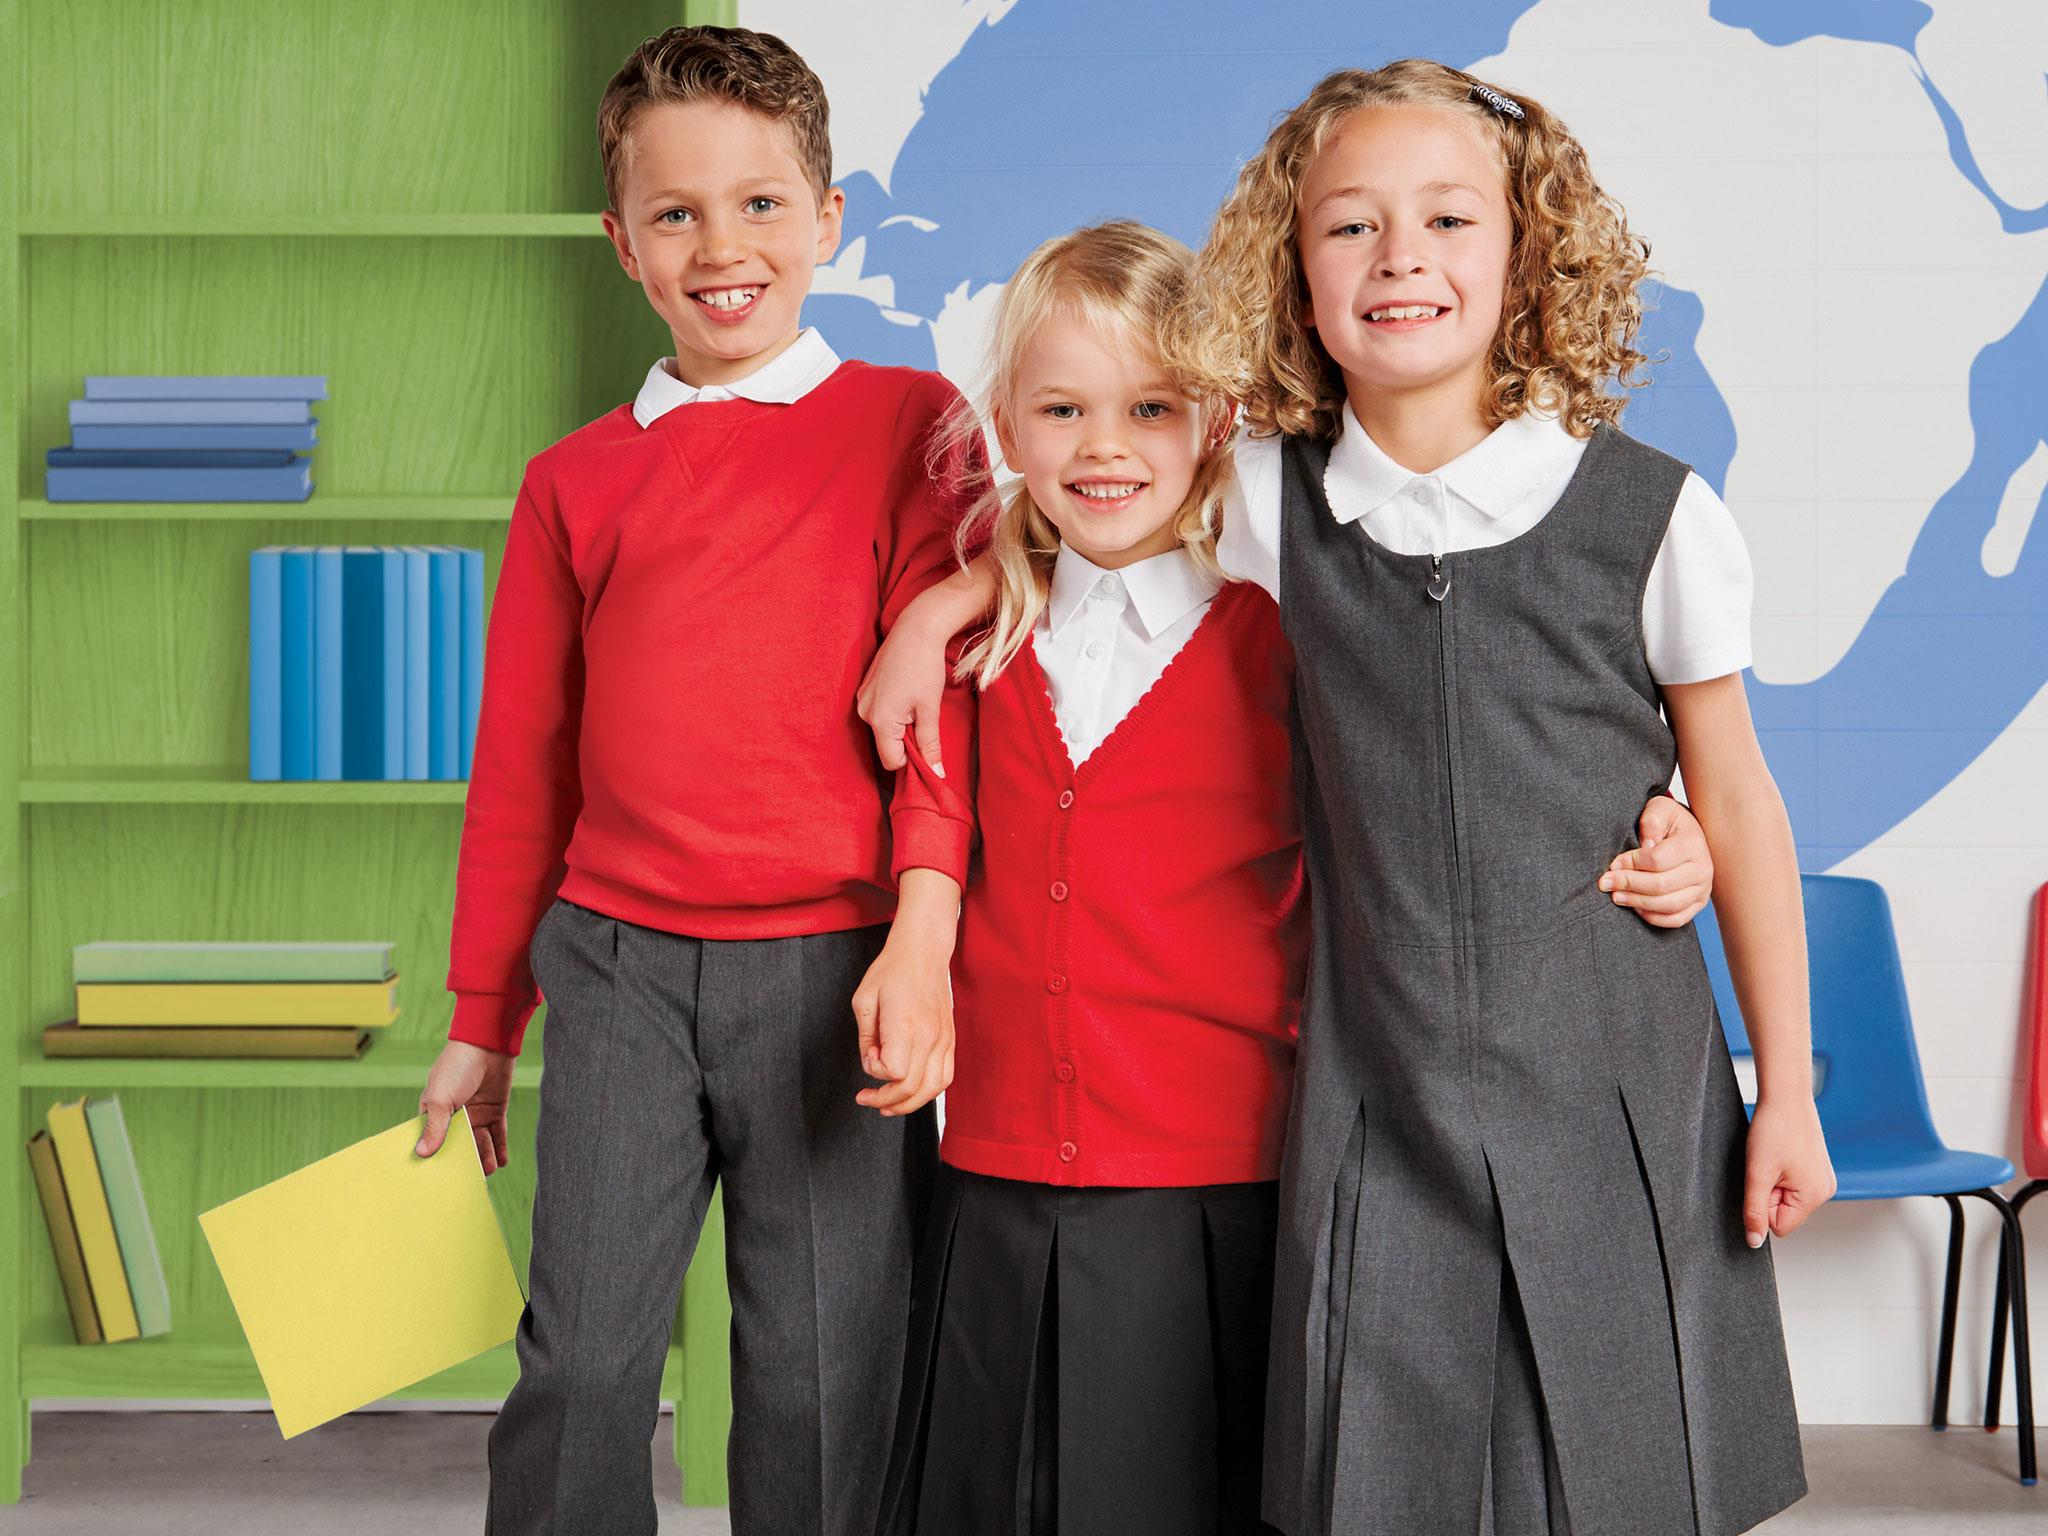 10 Best School Uniforms The Independent